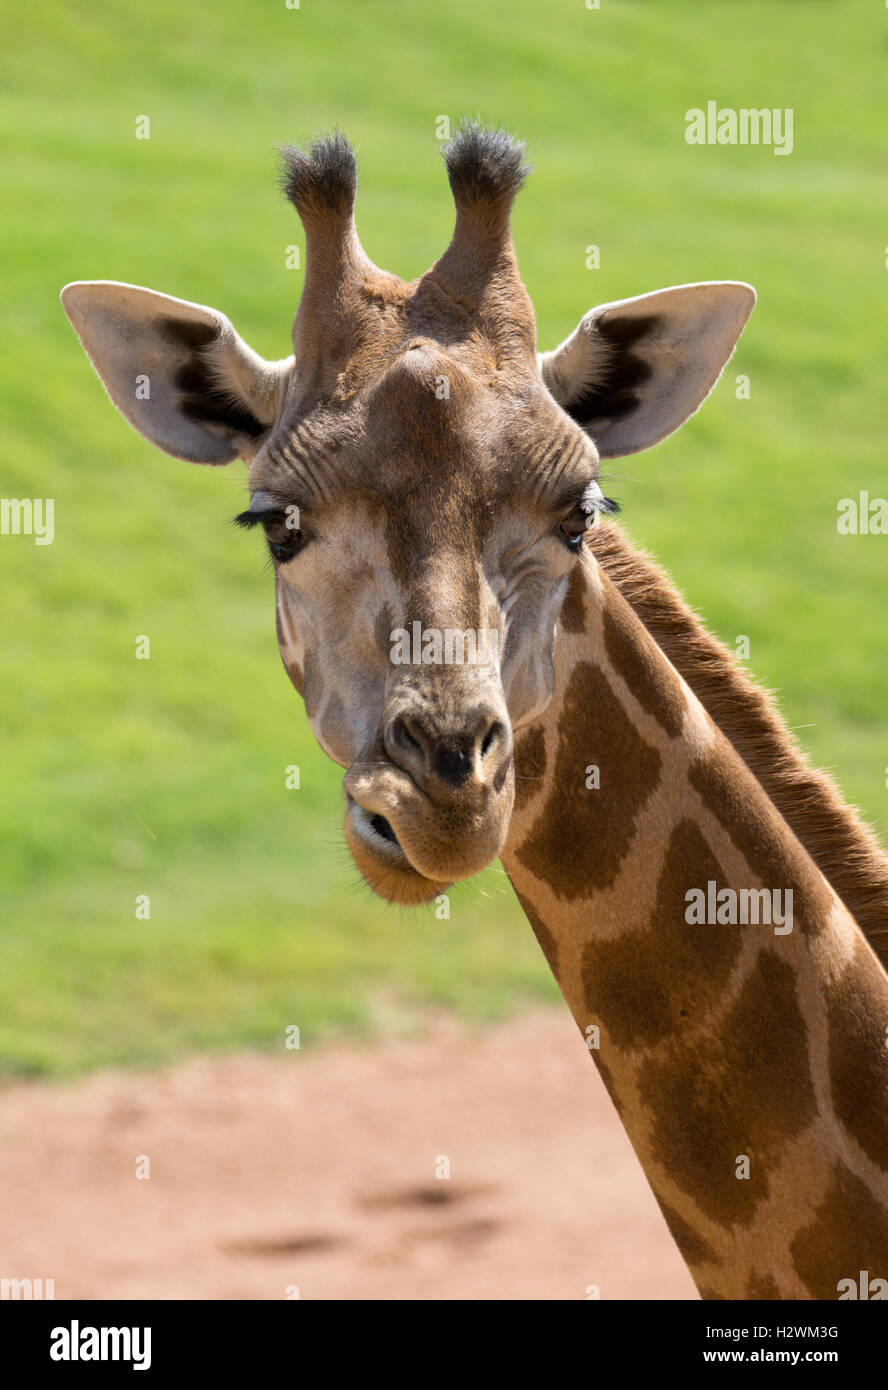 Closeup of a giraffe head - Stock Image